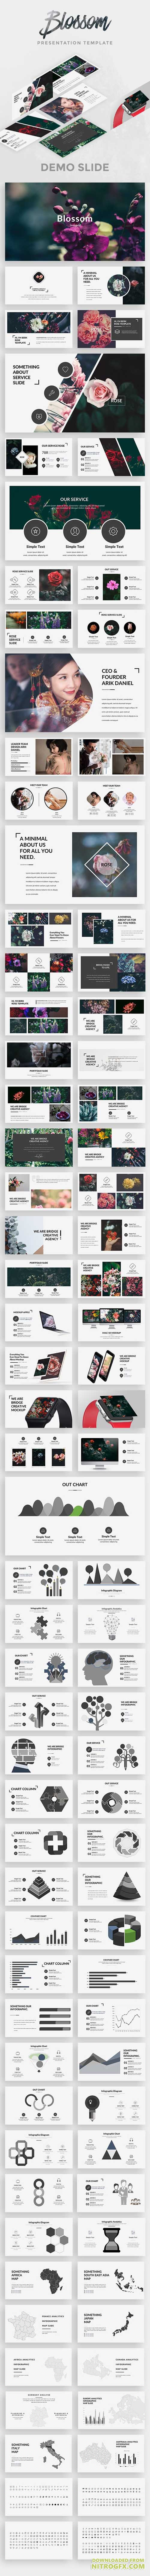 Blossom Creative Powerpoint Template 20498154